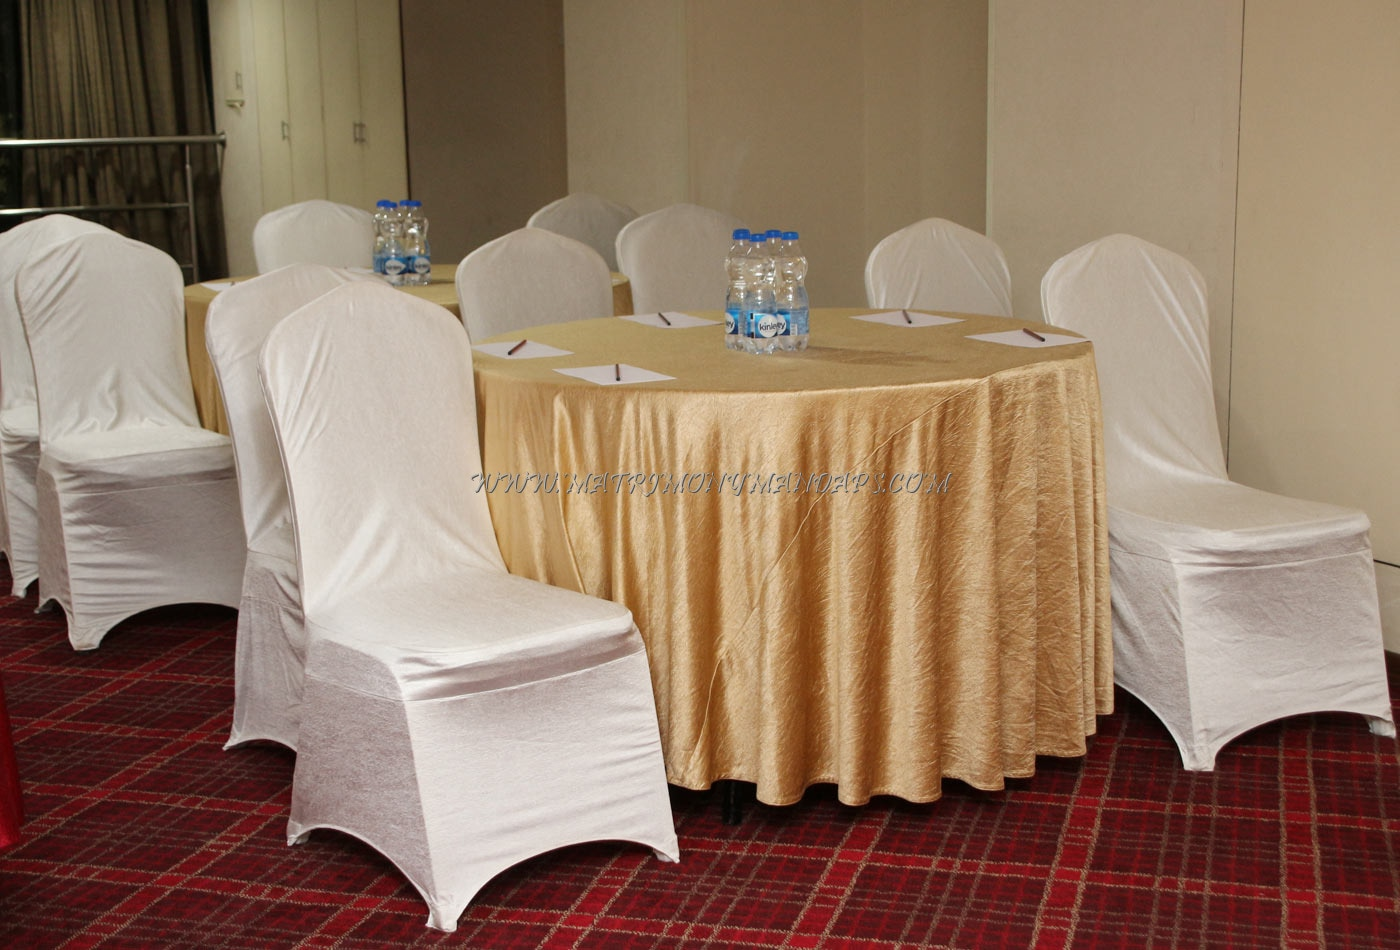 Find the availability of the The Monarch Serenity Banquet Hall (A/C) in MG Road, Bangalore and avail special offers